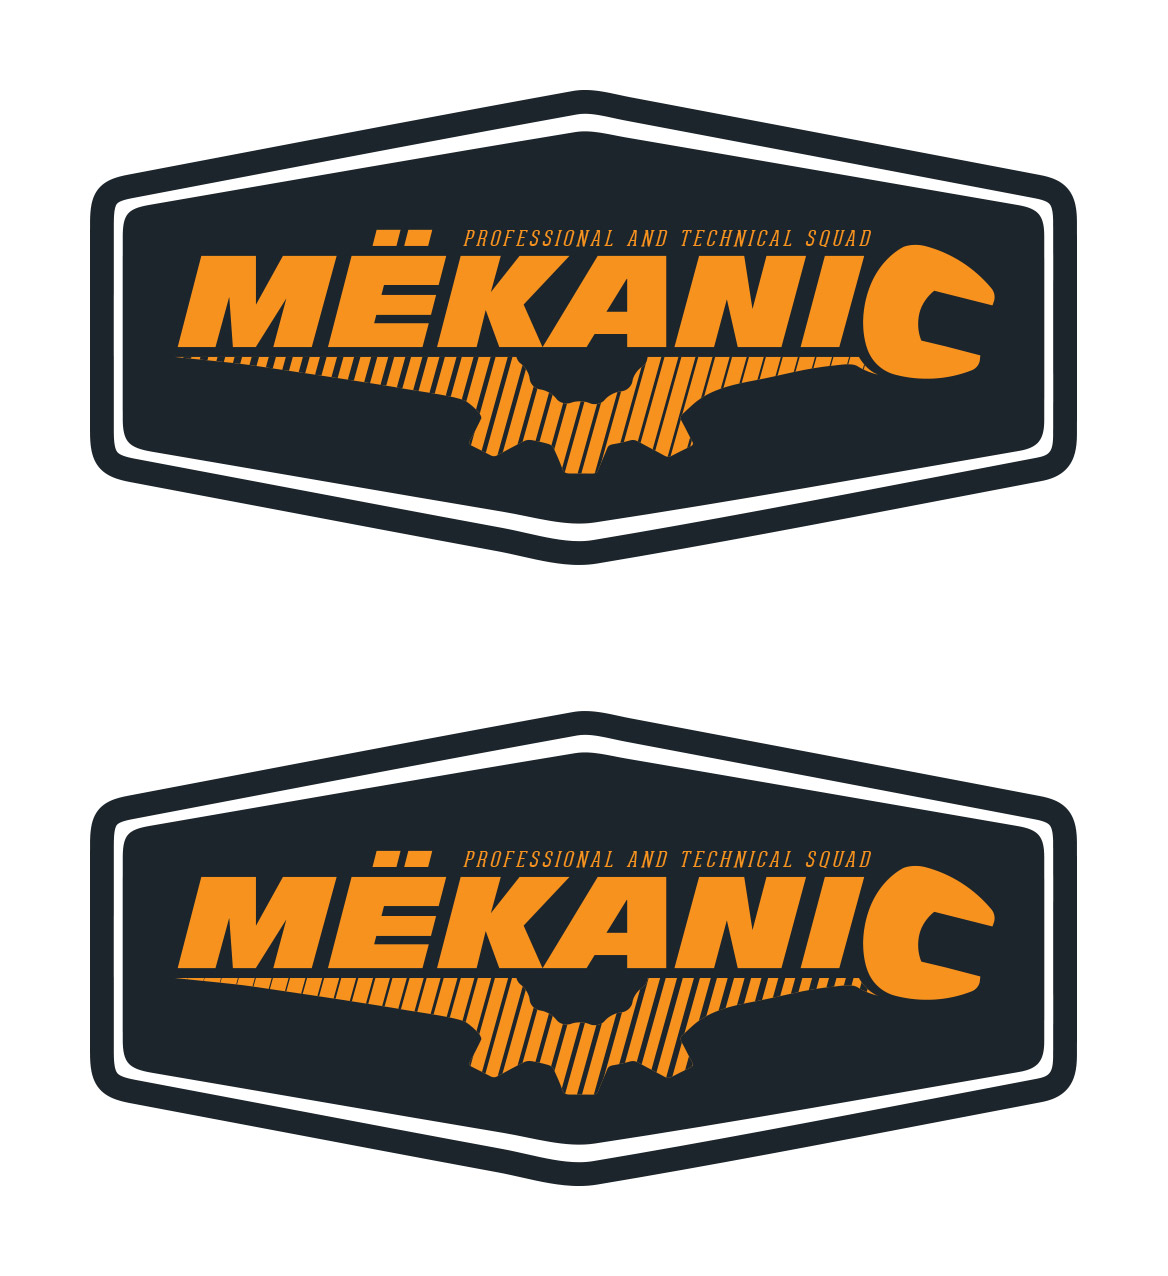 Logo Design by olii - Entry No. 214 in the Logo Design Contest Creative Logo Design for MËKANIC - Professional and technical squad.